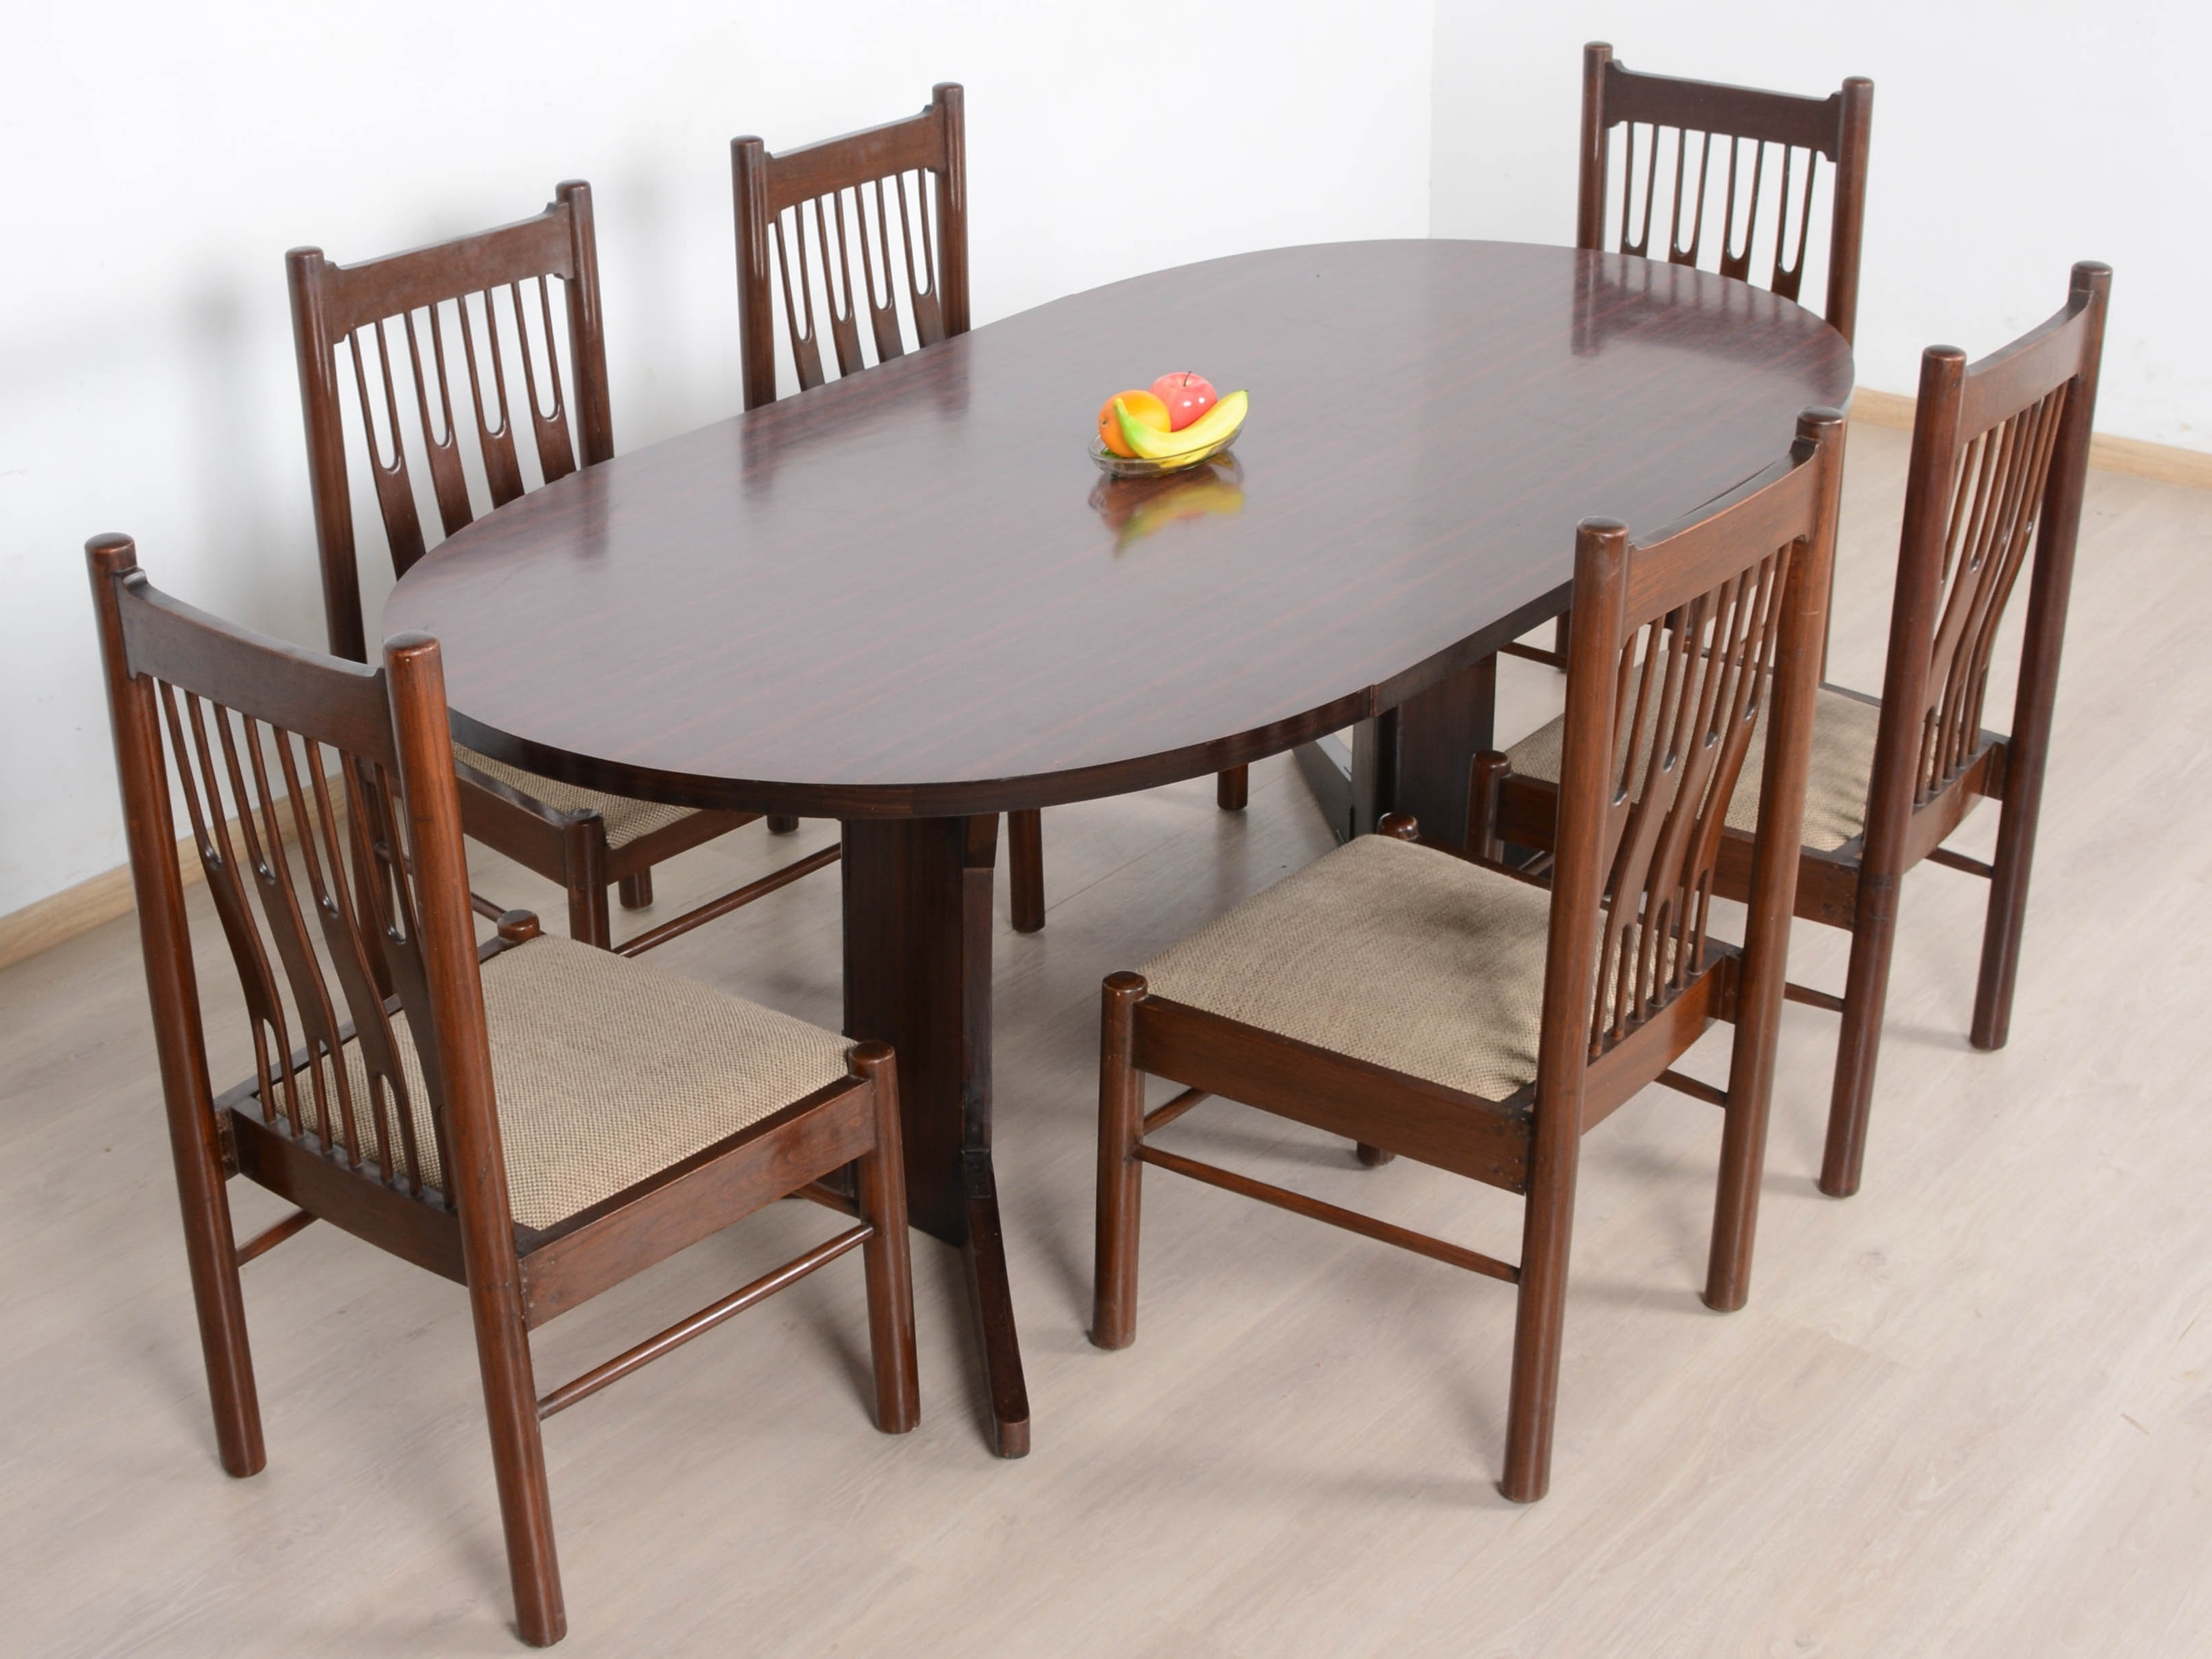 Mason Teak 6 Seater Dining Table Set: Buy And Sell Used Furniture In Regarding Recent 6 Seater Dining Tables (View 8 of 25)